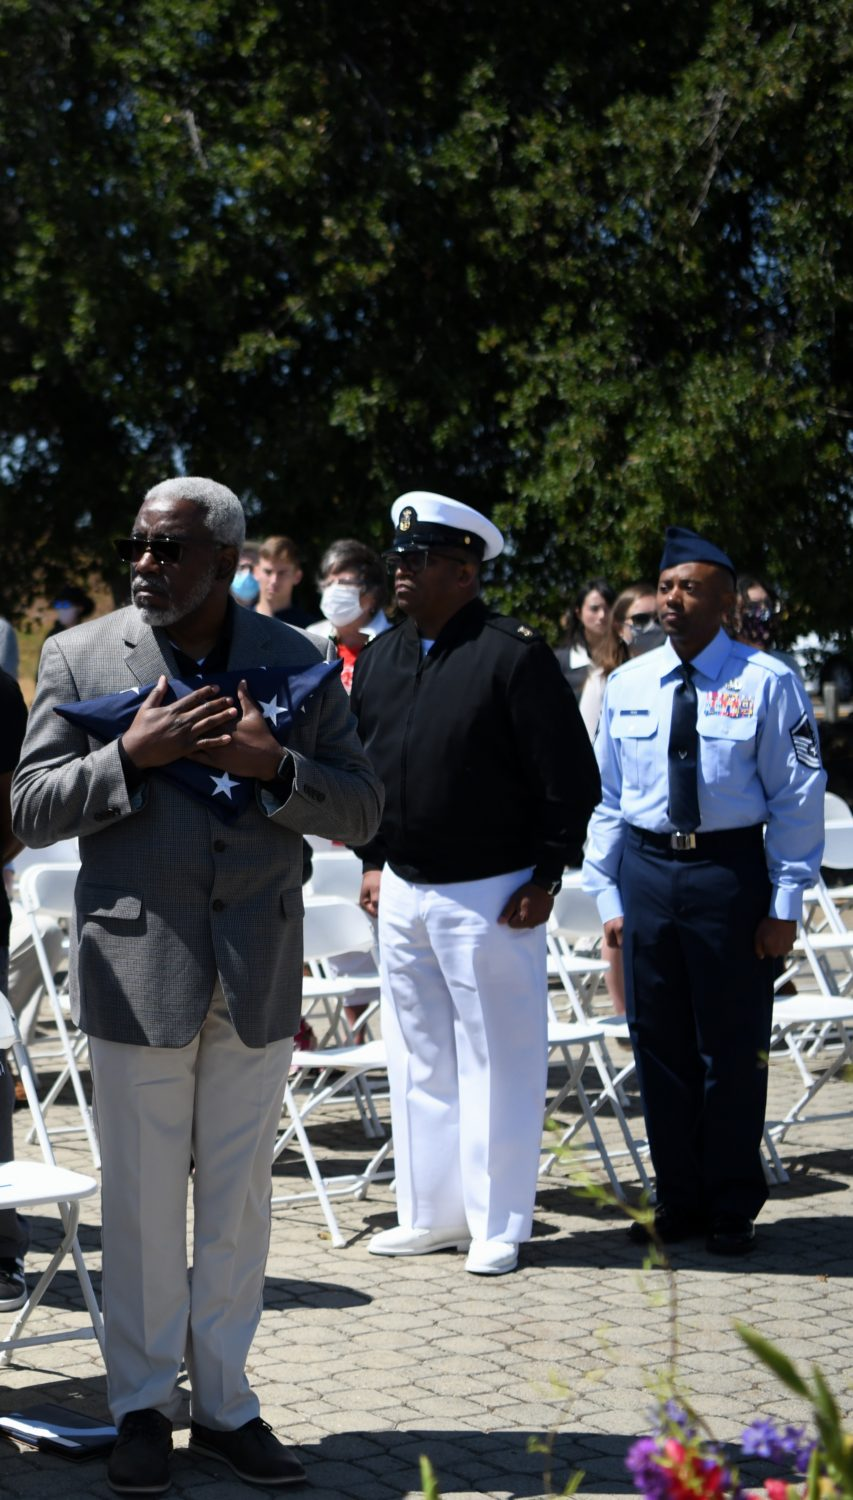 Jason-Felisbret-at-77th-anniversary-commemoration-of-the-Port-Chicago-Explosion-by-Johnnie-Burrell-071721, 77th anniversary commemoration of the Port Chicago Explosion, Local News & Views